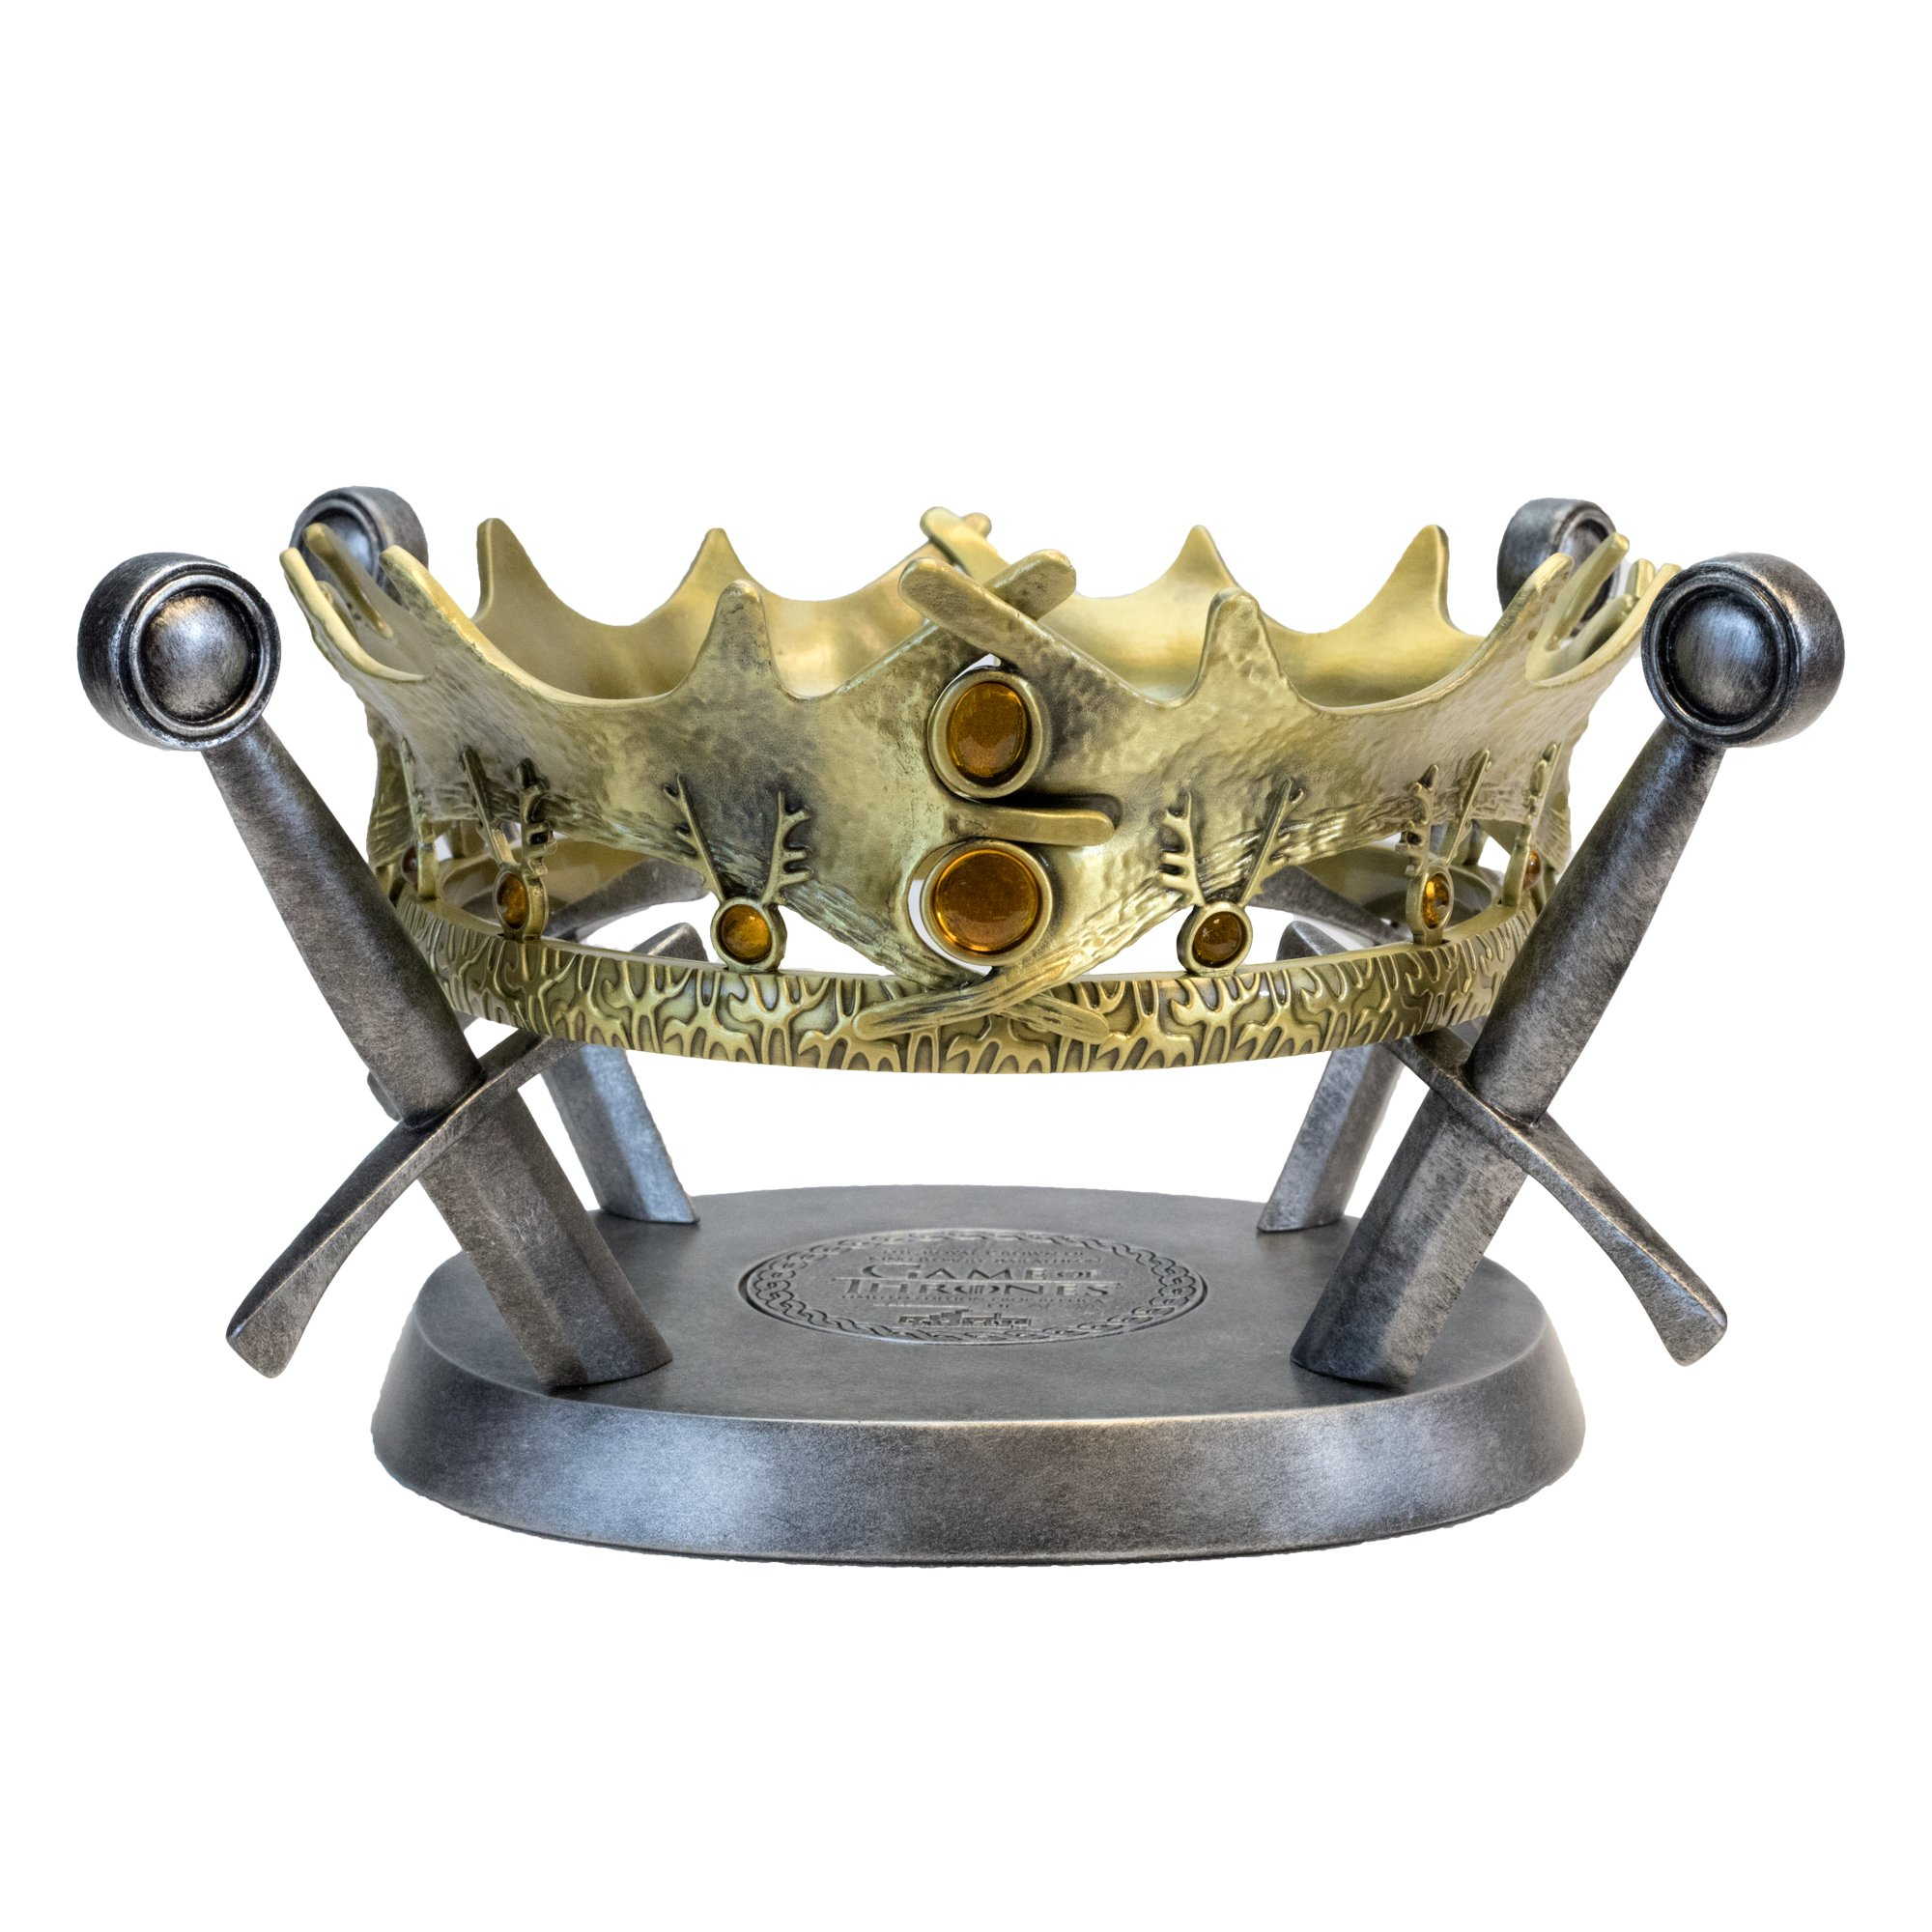 Factory Entertainment Game Of Thrones - The Royal Crown Of King Robert Baratheon Limited Edition Prop Replica